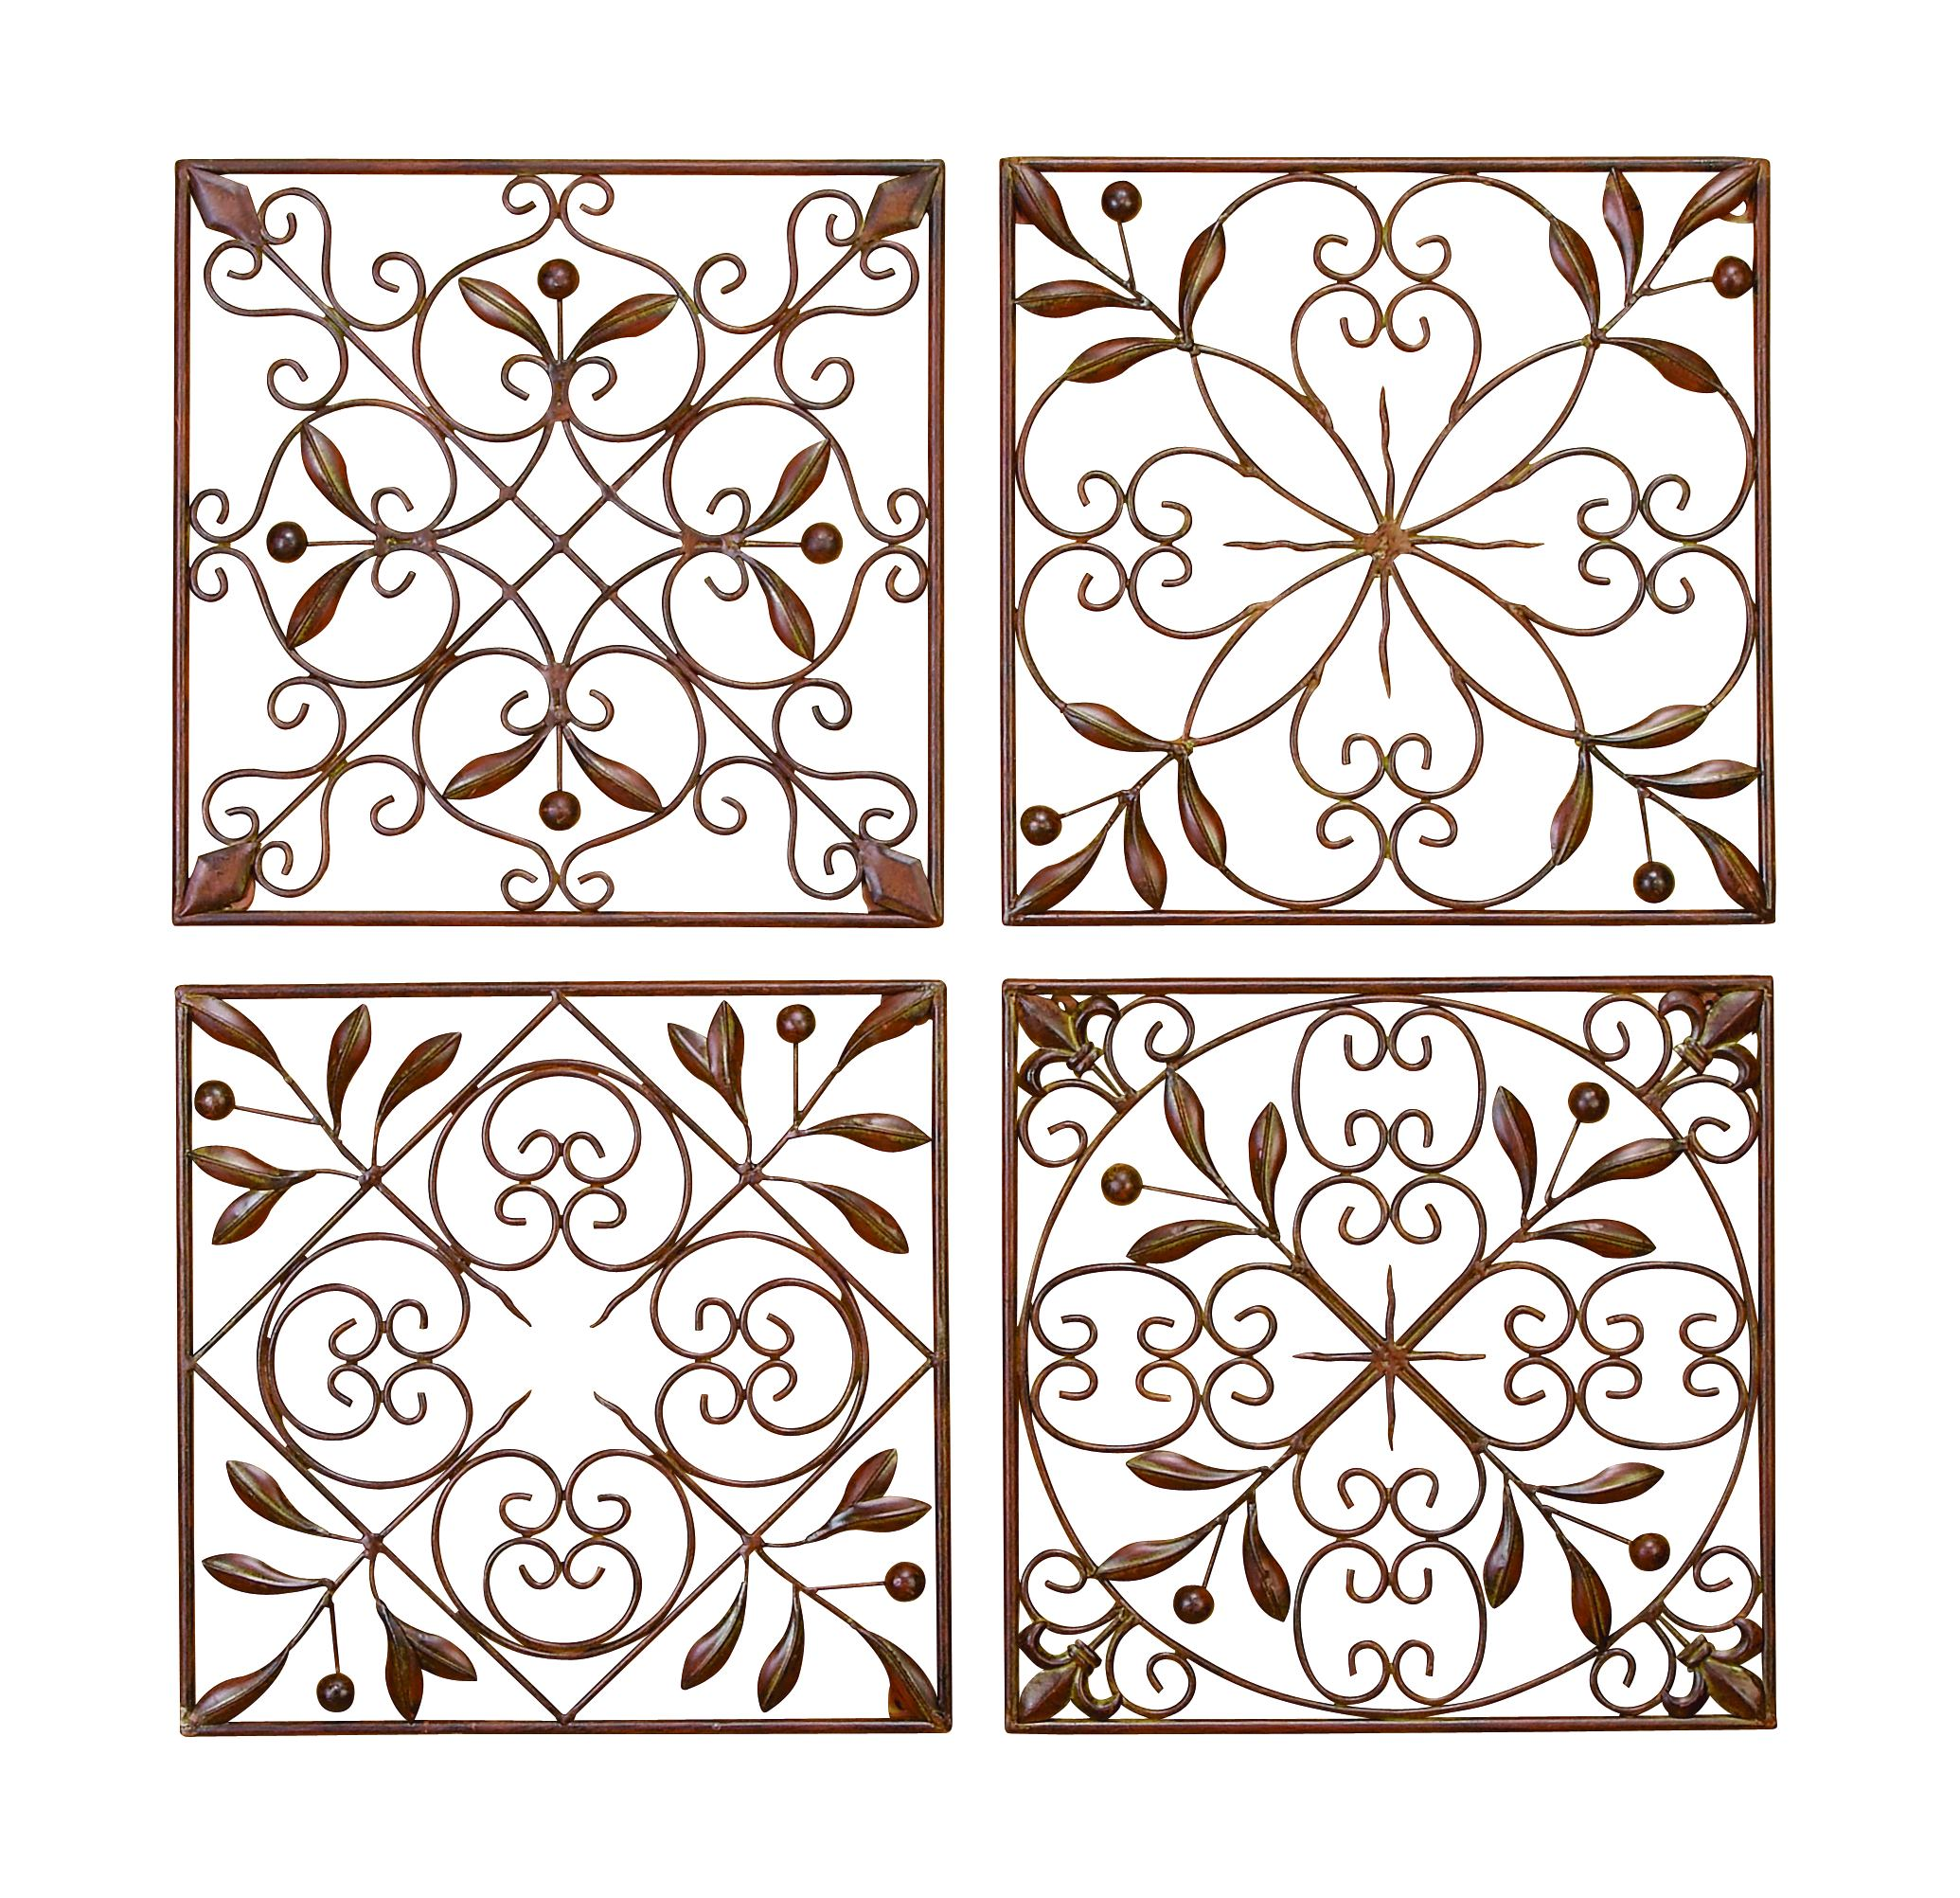 Metal Wall Decor, Set Of 4 Metal Filigrees To Hang Anywhere